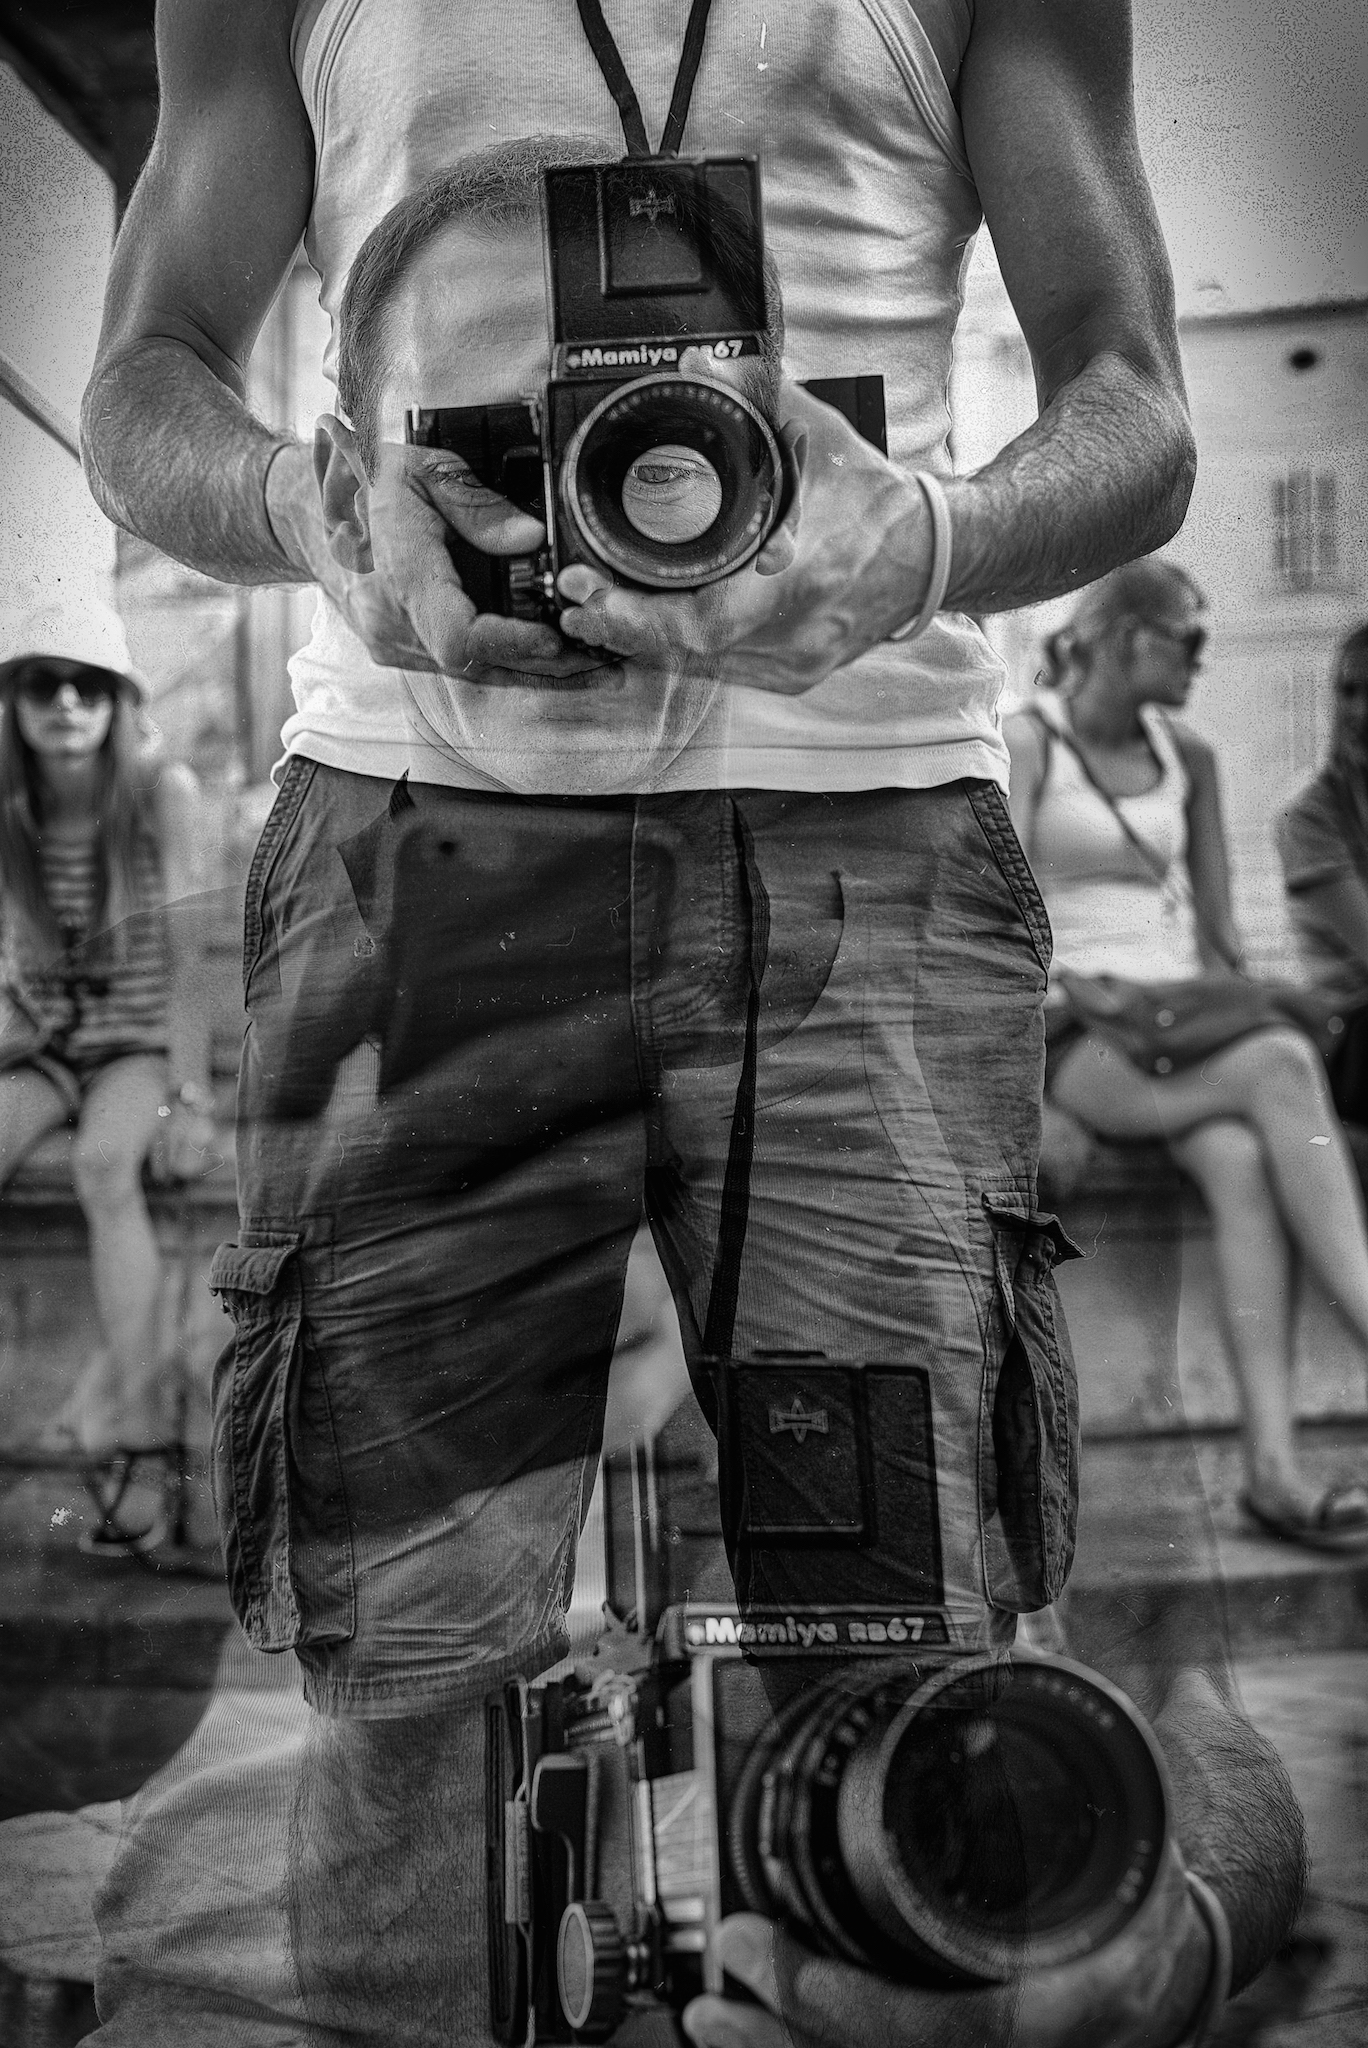 double expo, exposure, miroir, symetrie, video, photo, street, street photography, reportage, abstract, abstrait, exterior, live, video, danse, ciel, sky, wall, sea, mer, production, concept, buzz, photographe, realisateur, documentaire, studio le carre, studio, lyon france, maroc, metro, subway